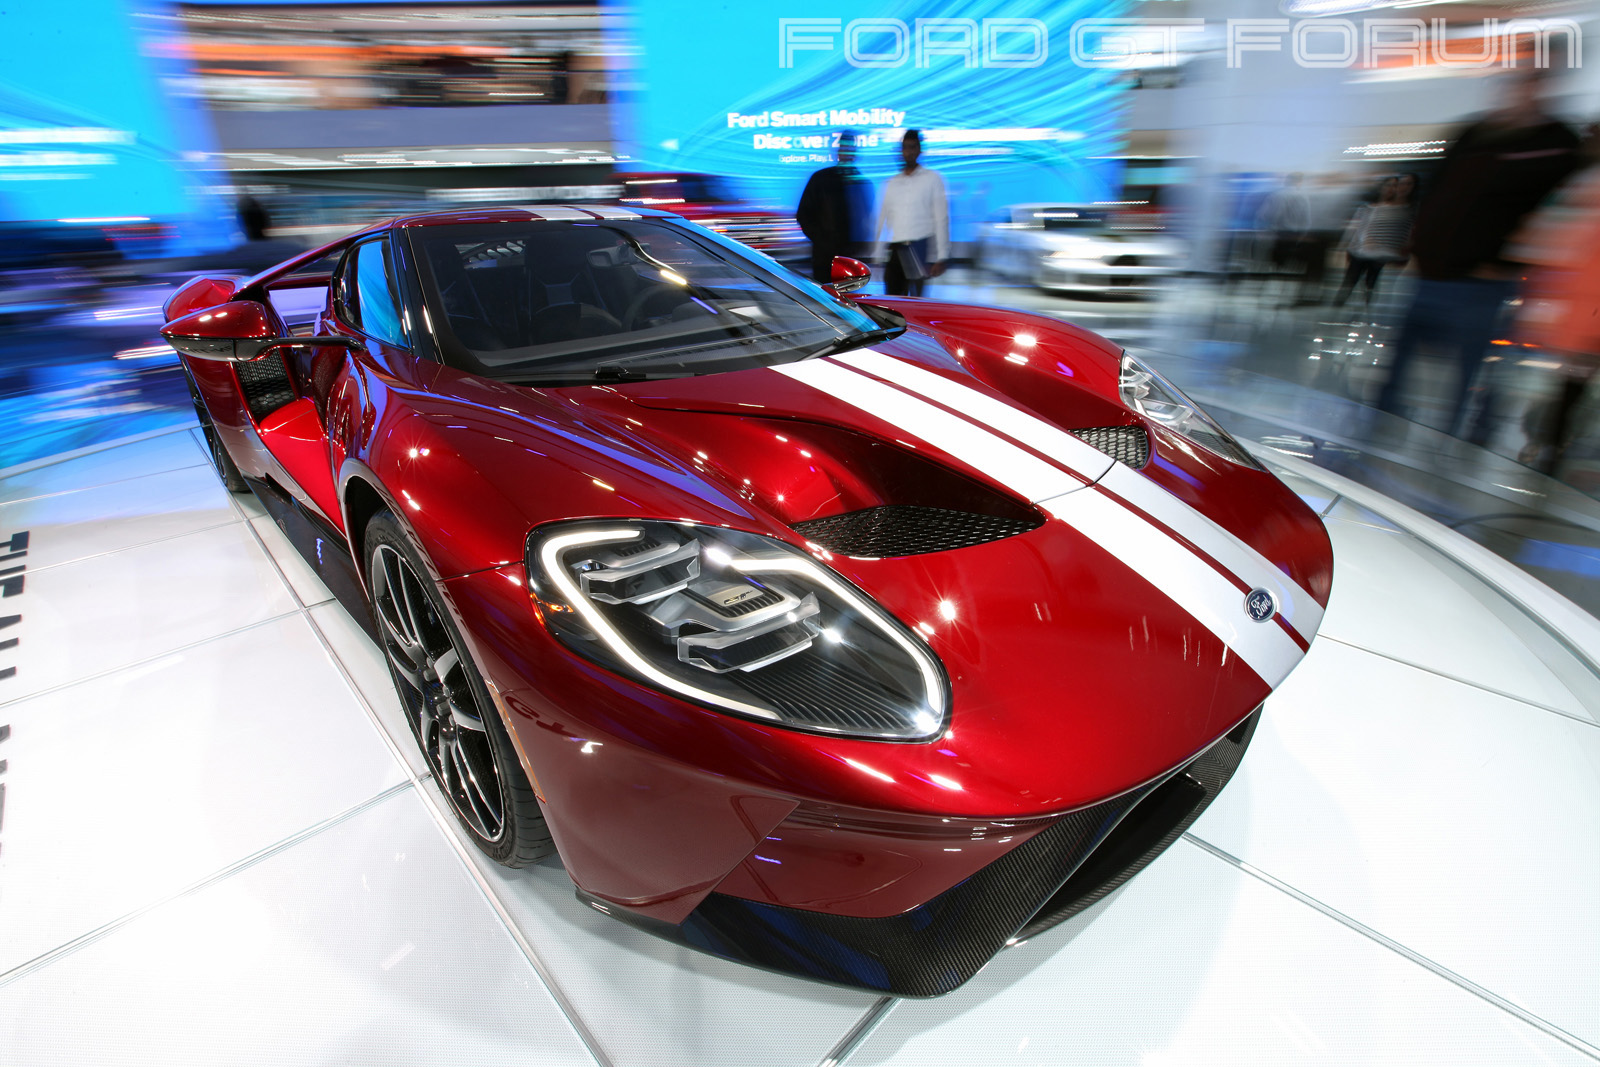 Ford-GT-Autoshow-3000-4